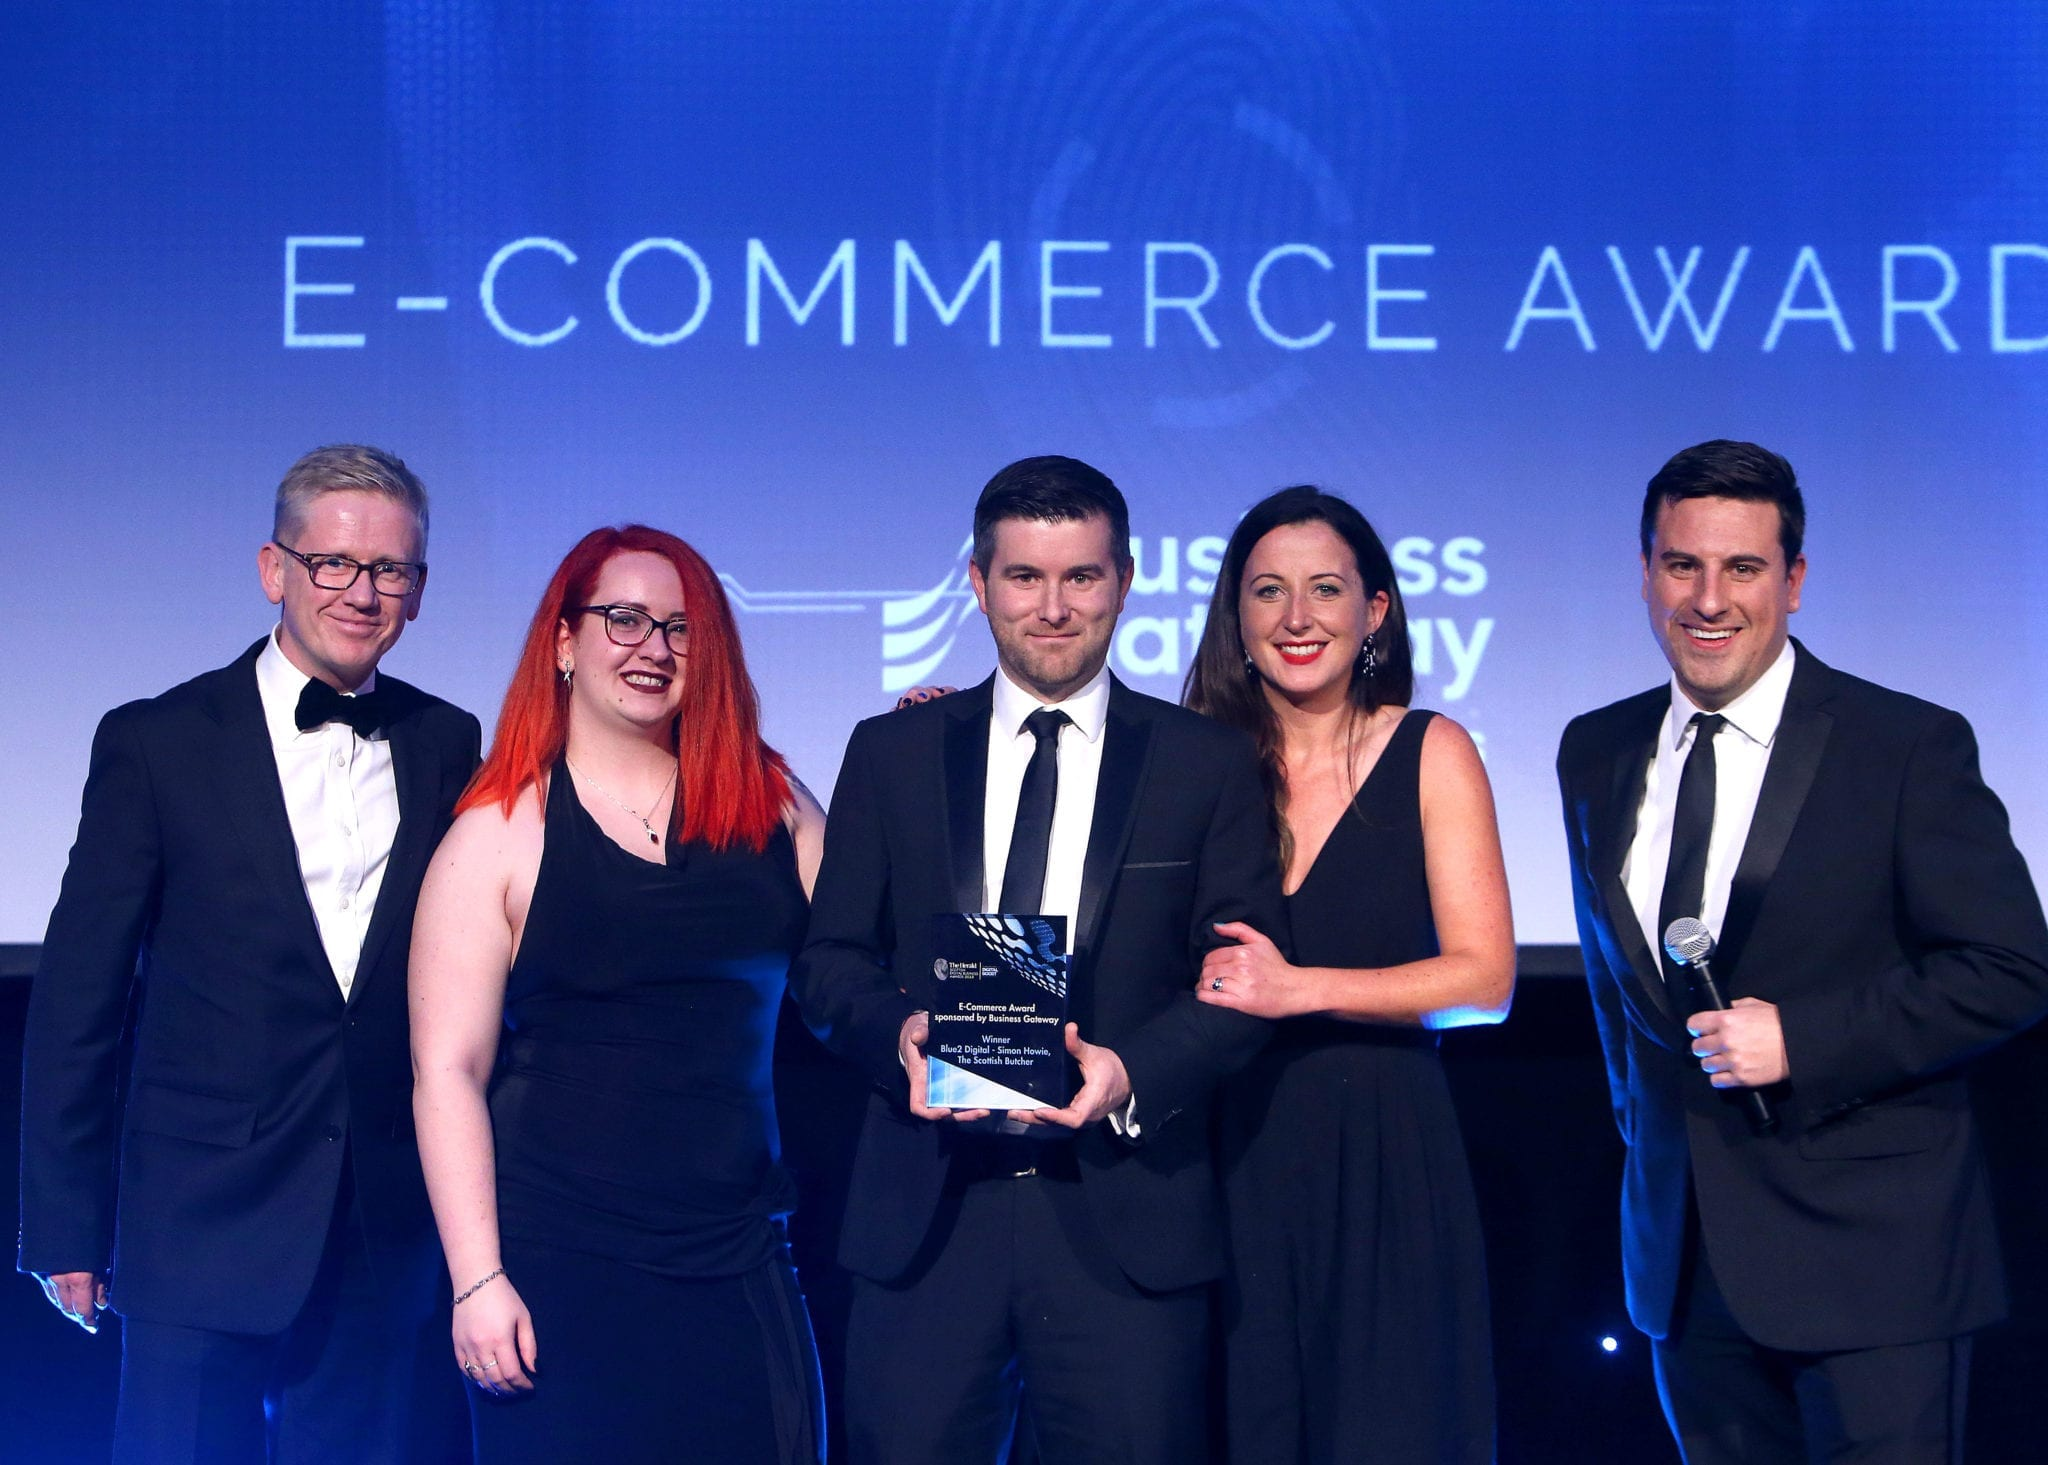 E-Commerce Award